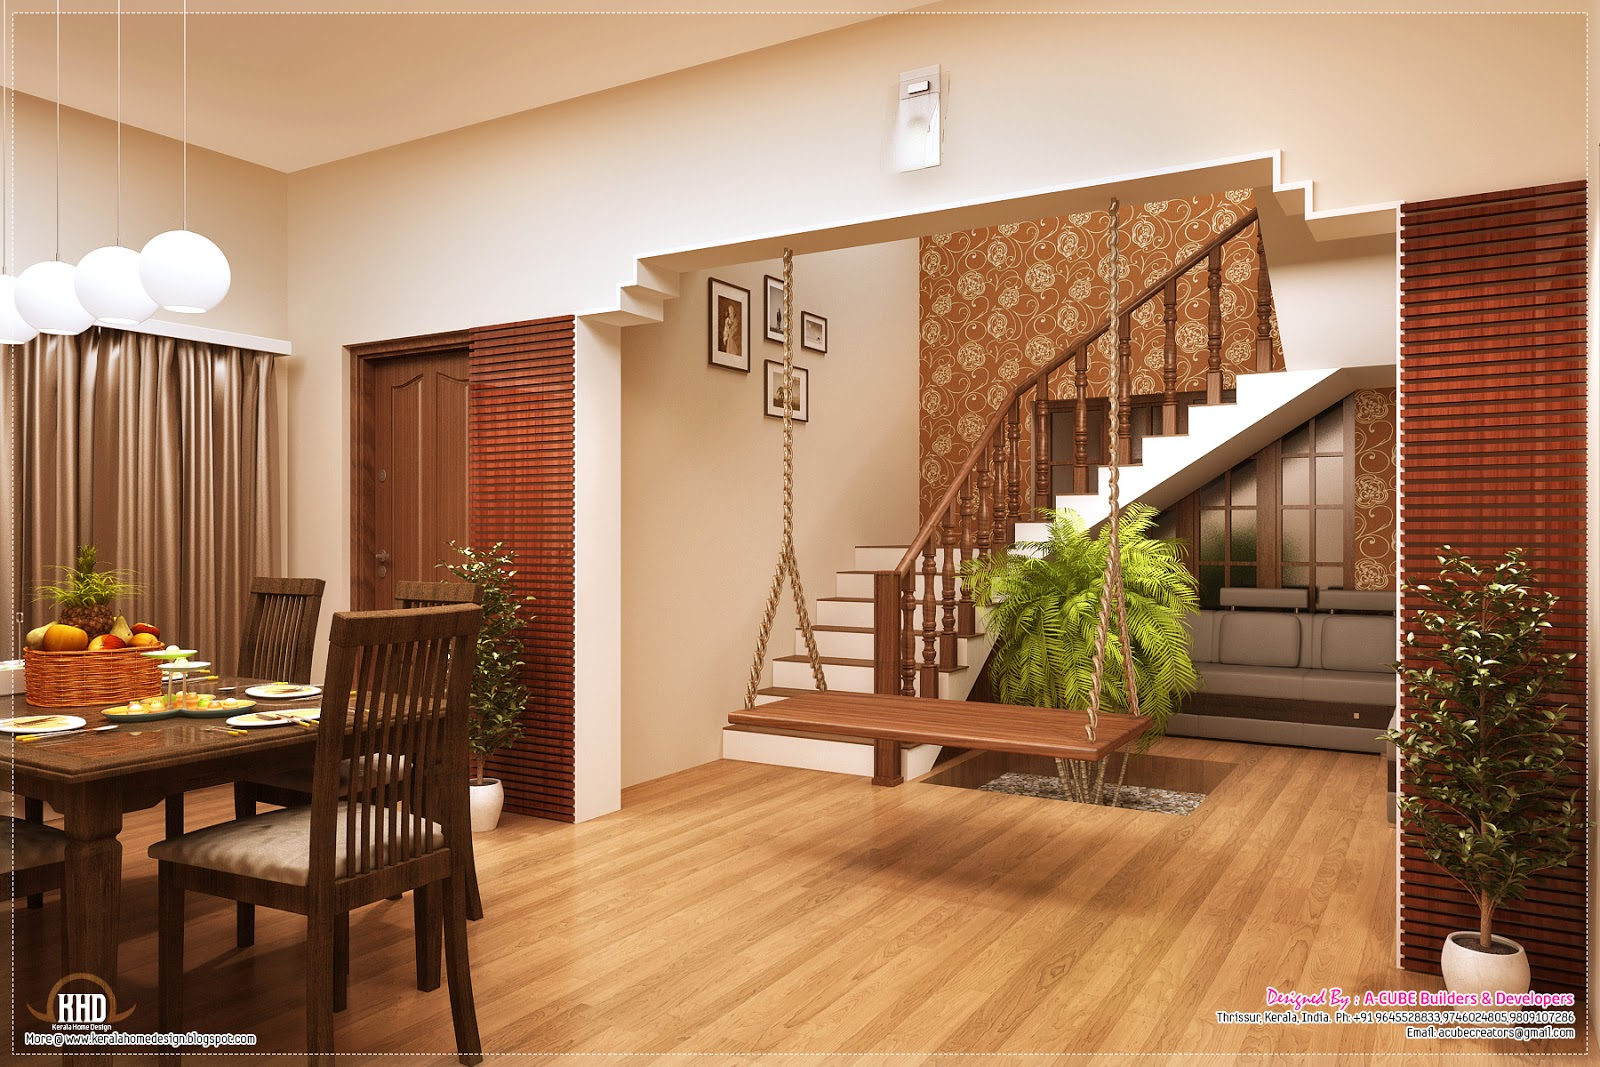 Awesome interior decoration ideas kerala home design and for Kerala interior designs